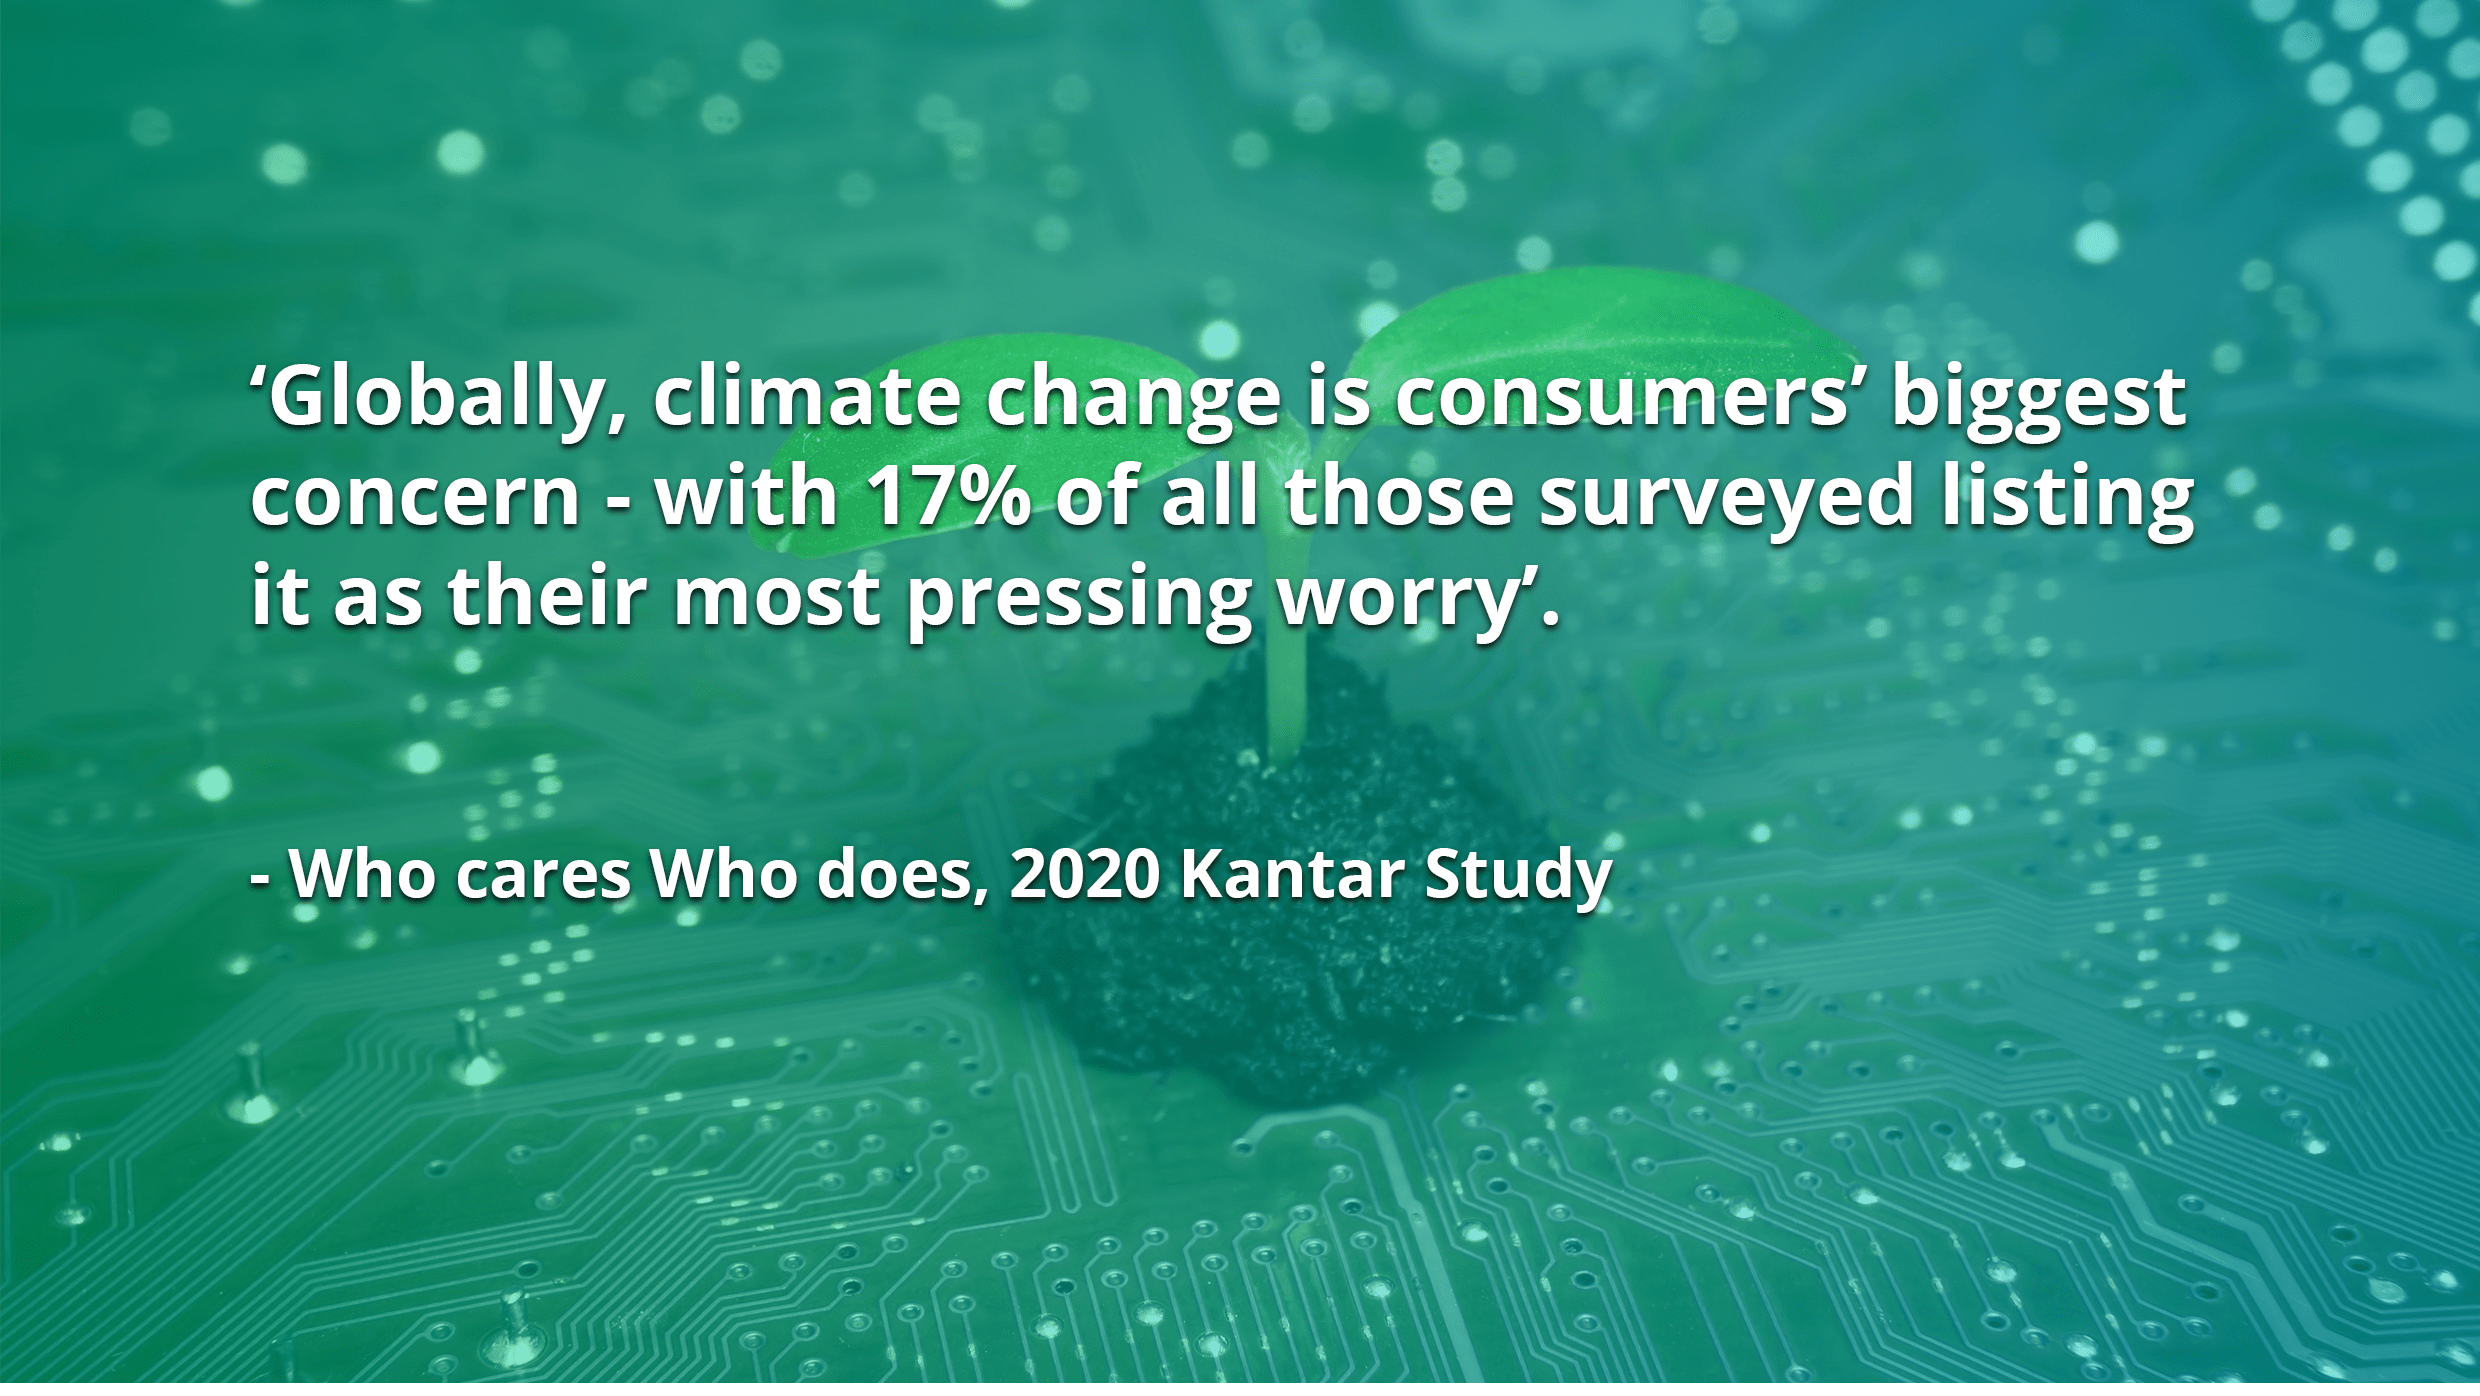 'Globally, climate change is consumers' biggest concern - with 17% of all those surveyed listing it as their most pressing worry'. - Who cares Who does, 2020 Kantar Study